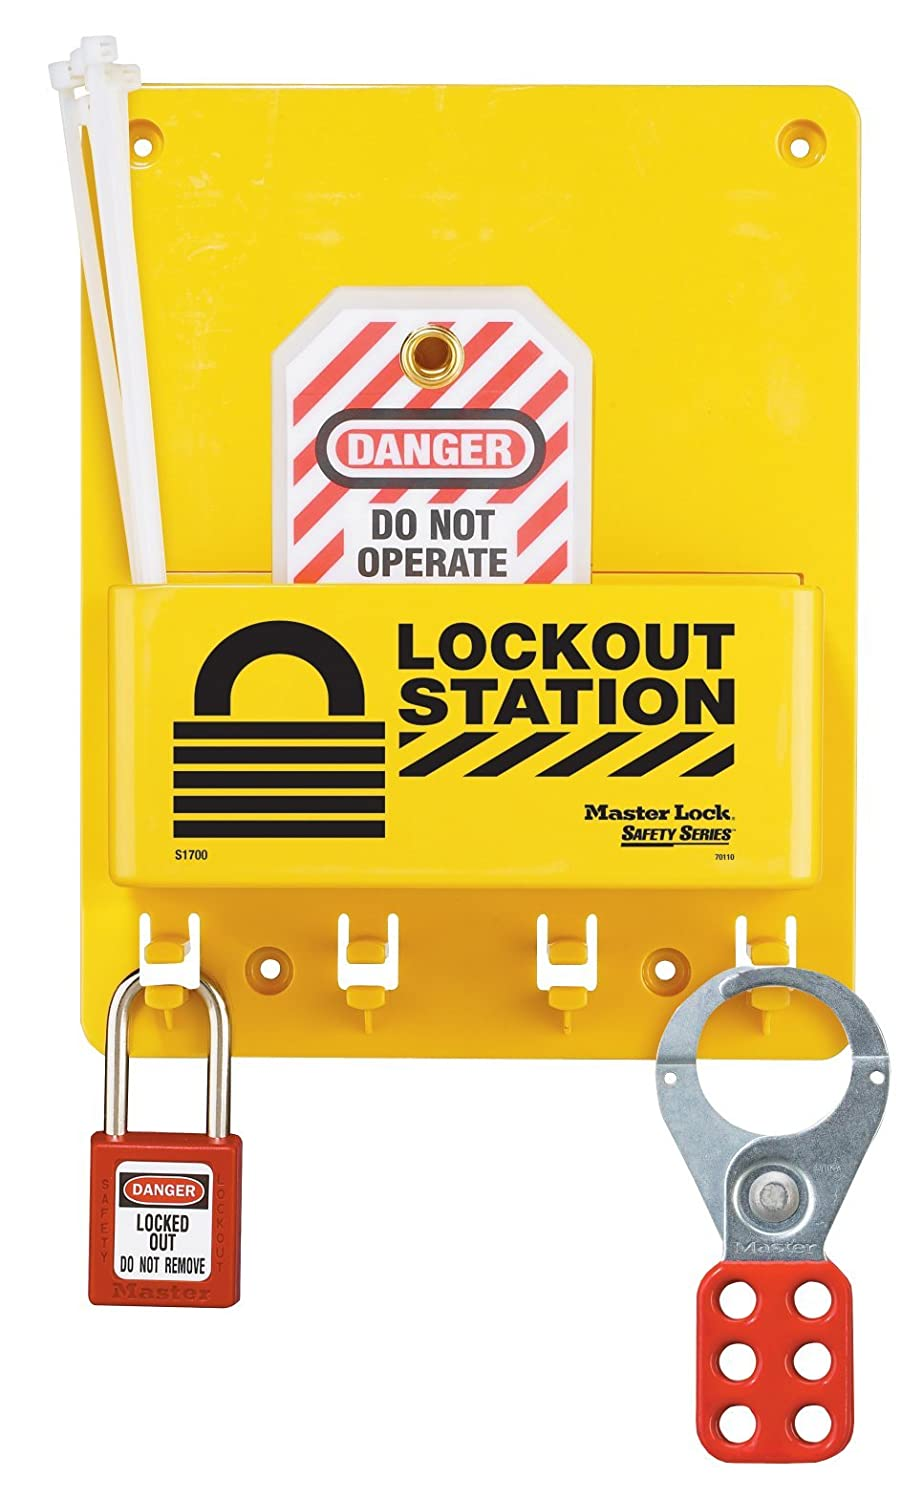 Master Lock MLS1705 Compact Lockout Station